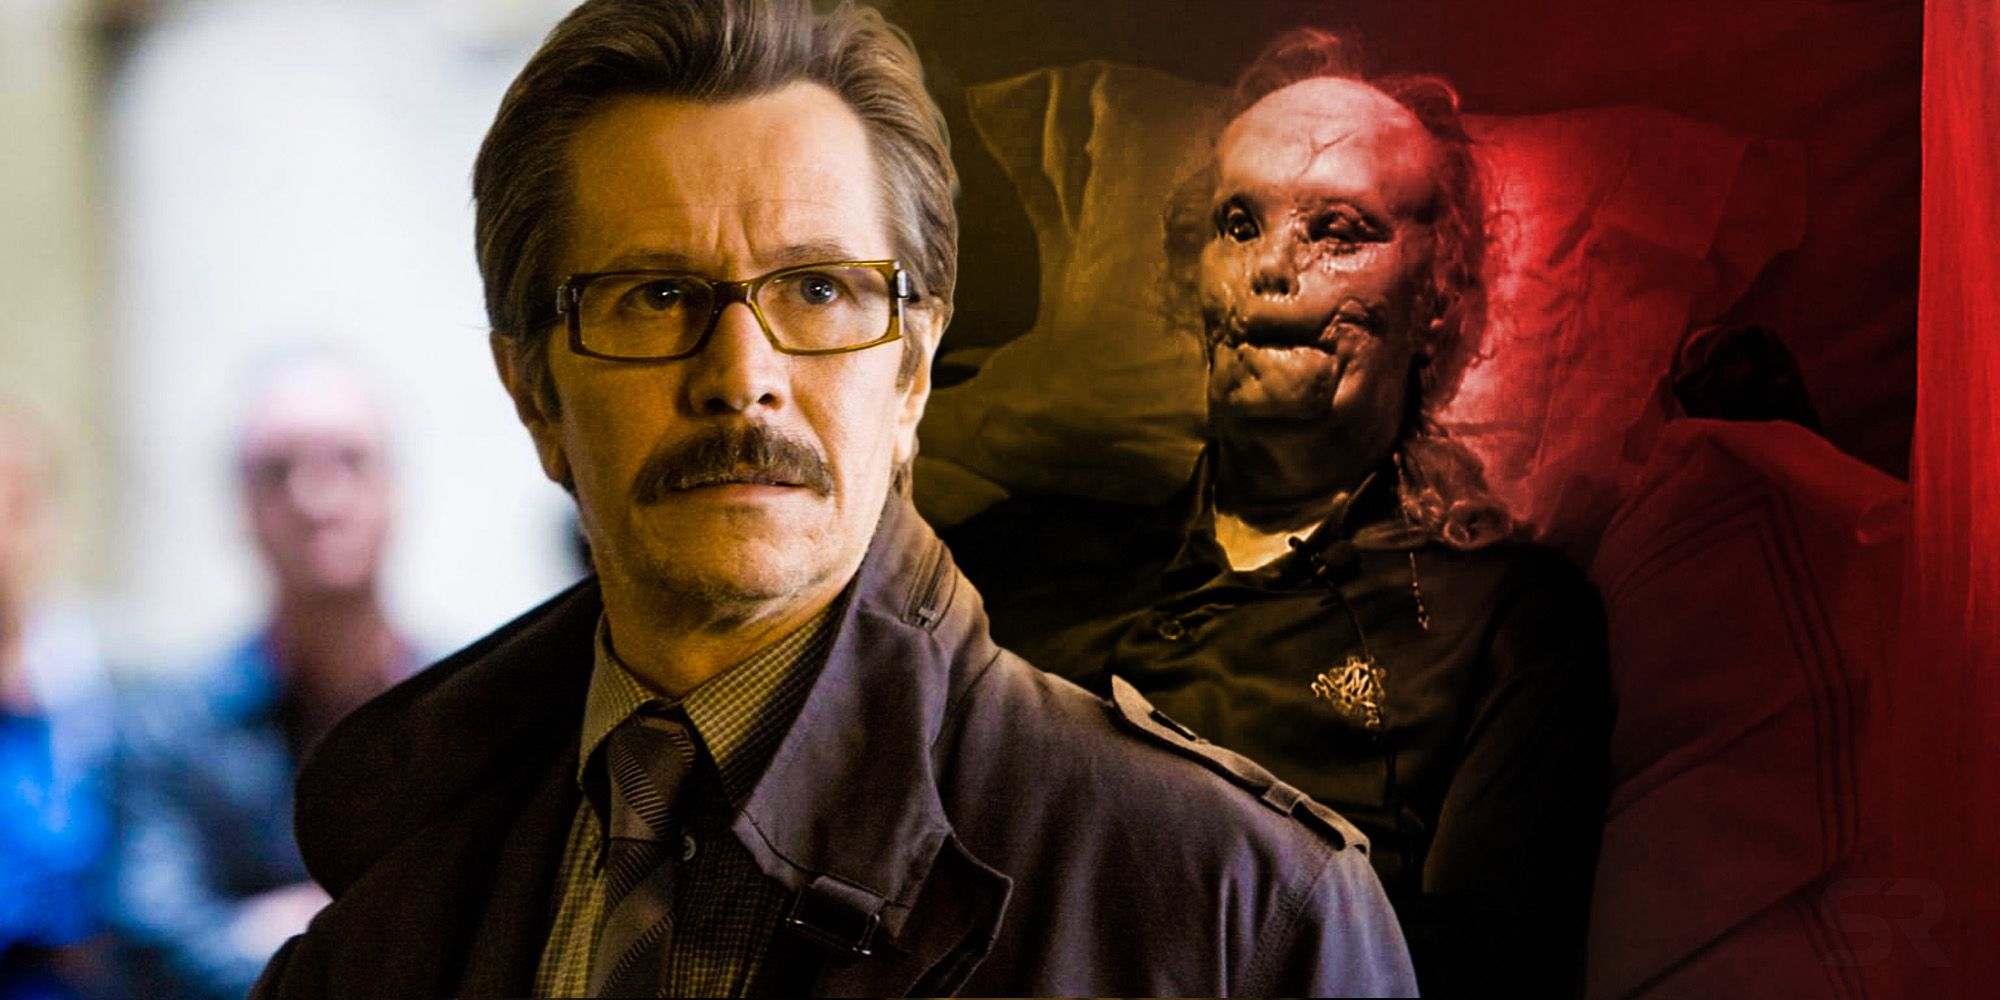 Why Gary Oldman Went Uncredited In Hannibal (& Who He Based His Voice On)